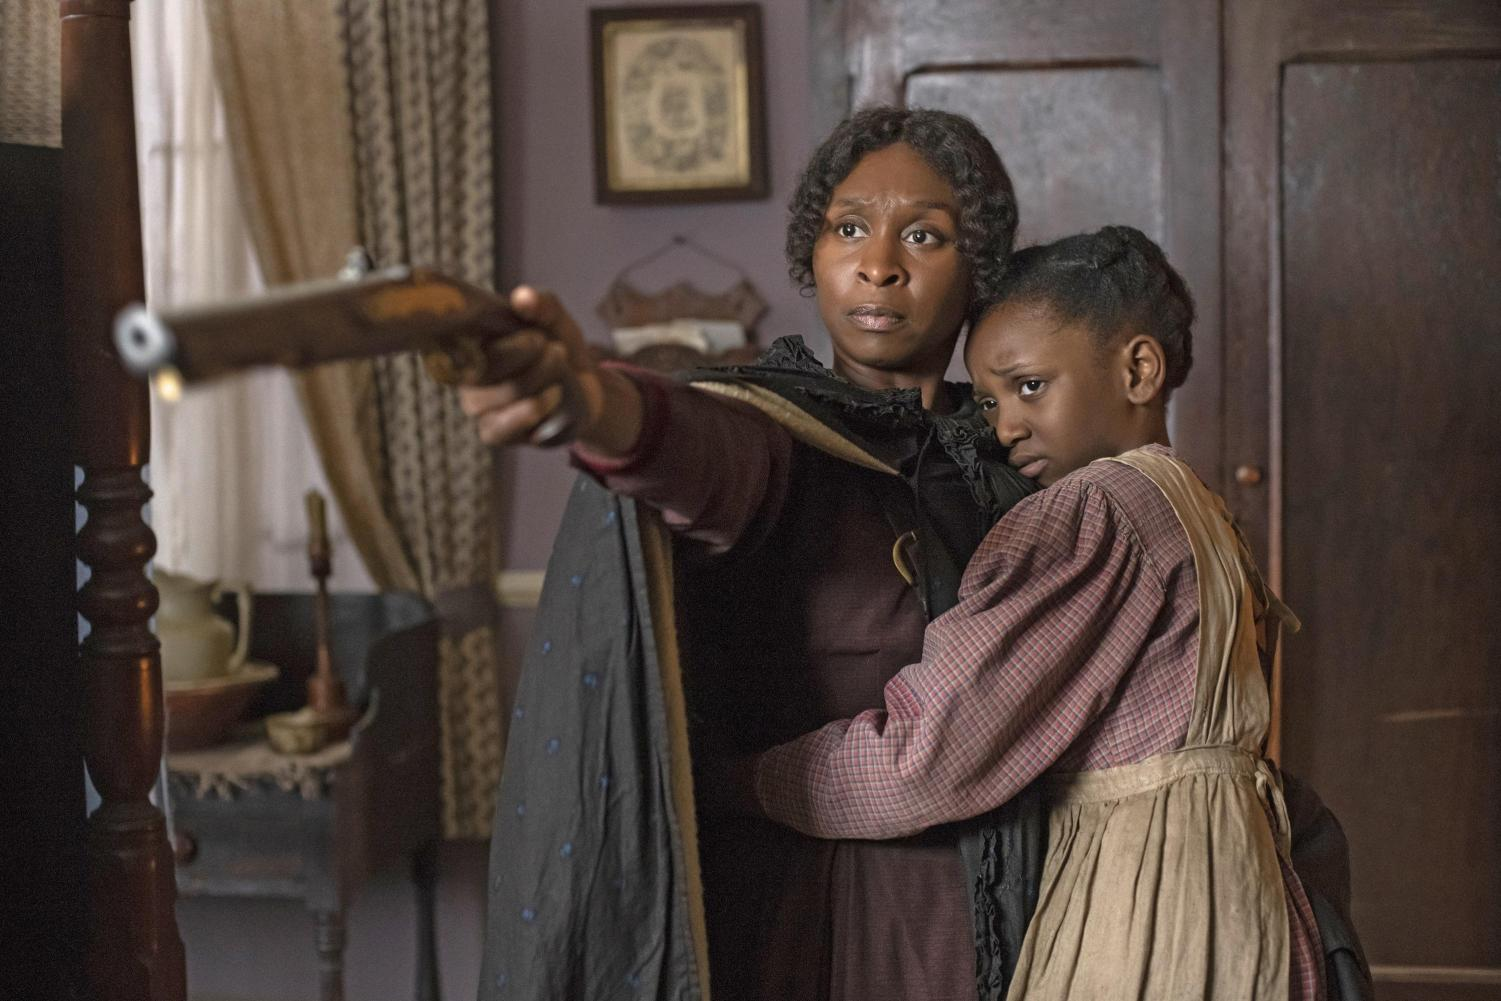 Cynthia Erivo as Harriet Tubman and Aria Brooks as Anger at age 8 in